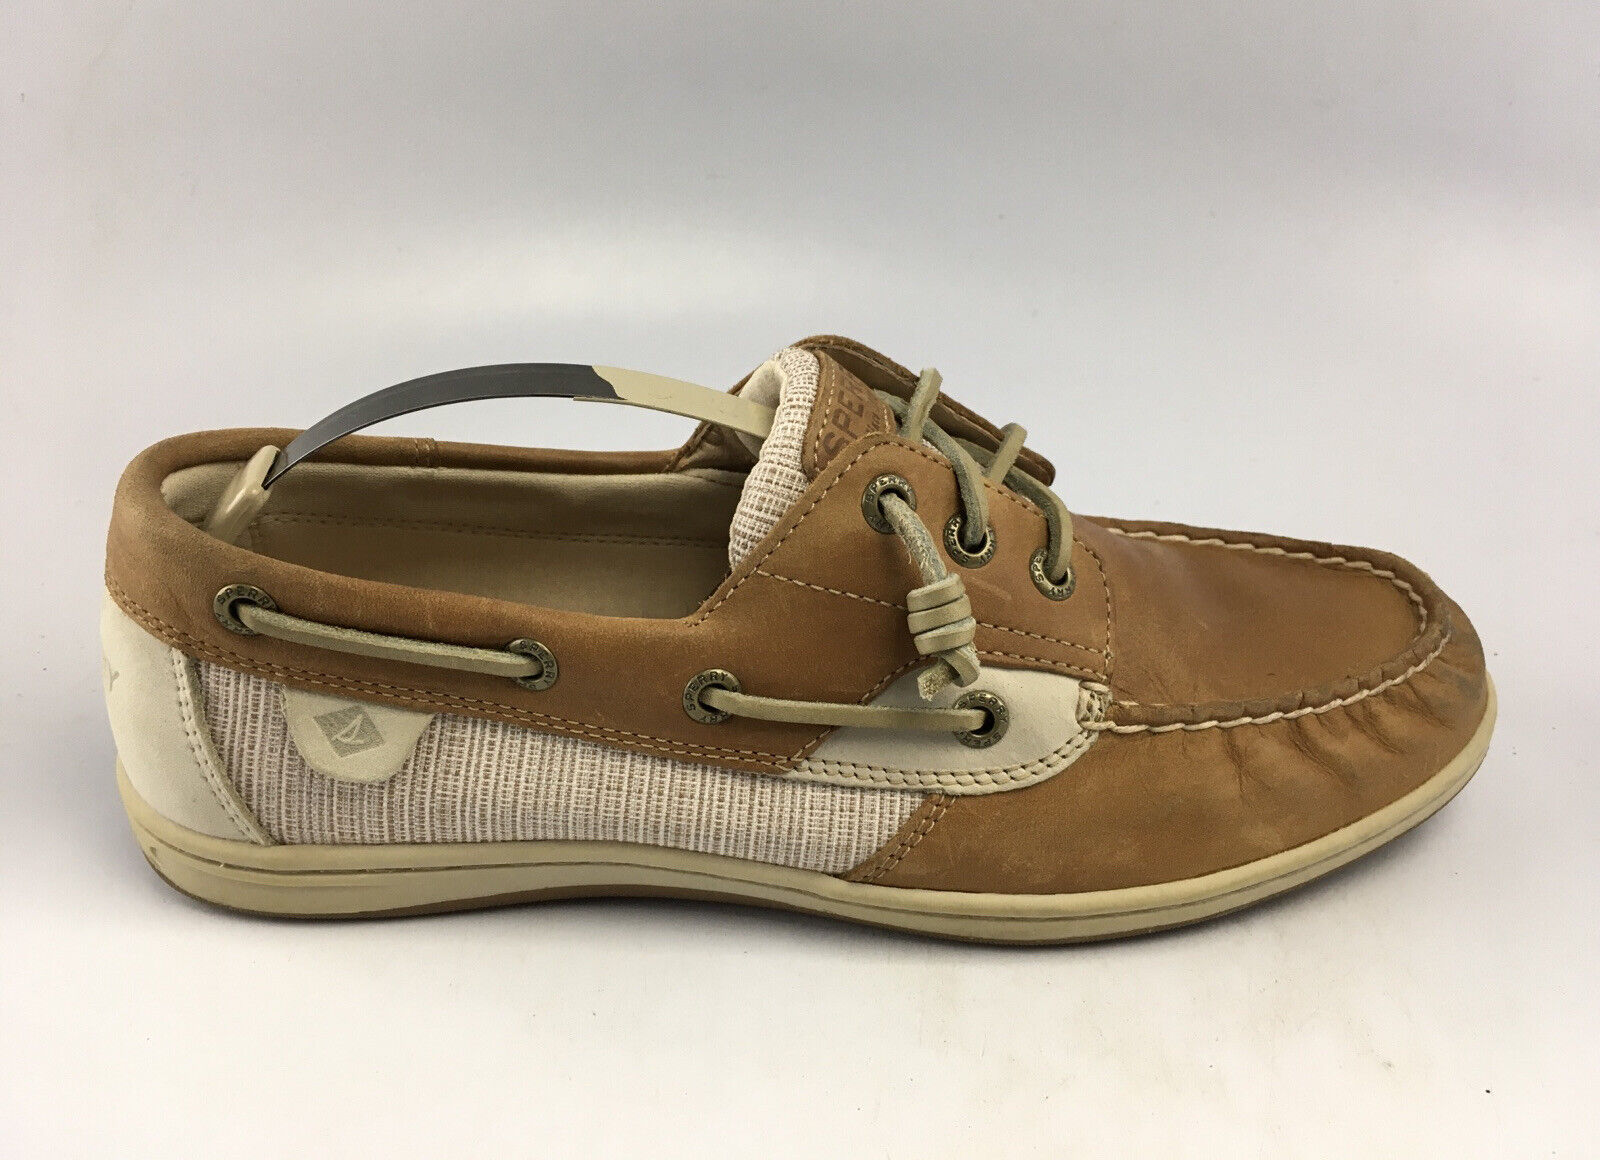 Sperry Top Sider Womens Songfish Boat Shoes STS95709 Brown/ Beige/ Sz 9 M